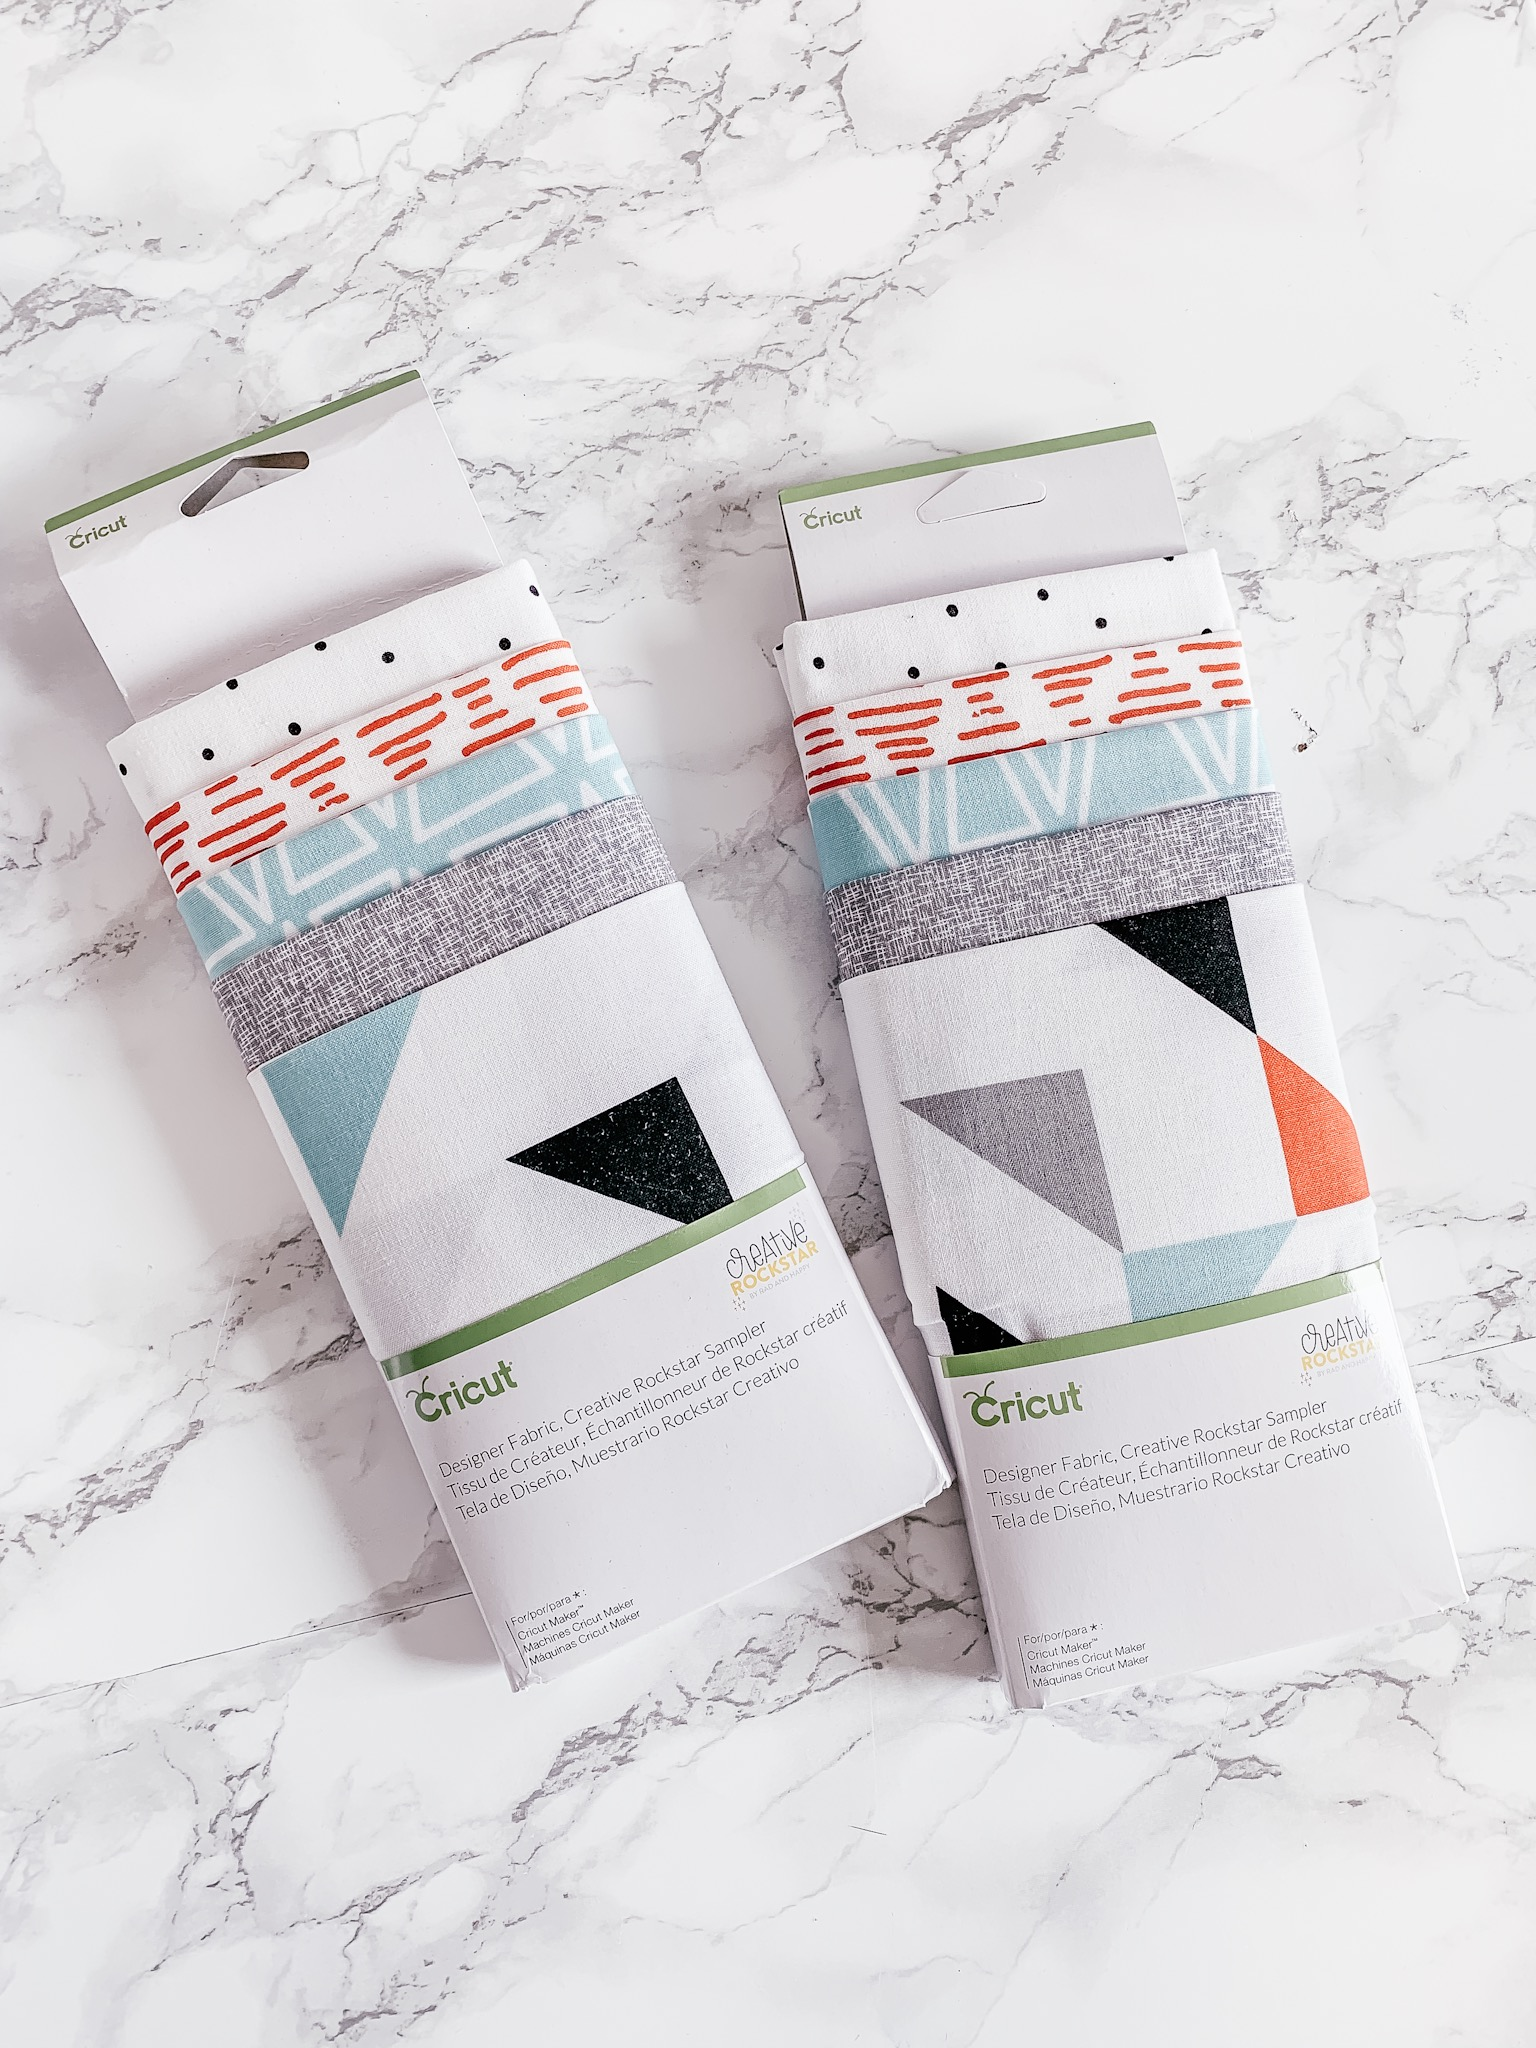 Cricut sales precut fabric samplers that are already the perfect size to be cut by the Cricut Maker. You can find them at JOANN. I love how the sets are color coordinated.